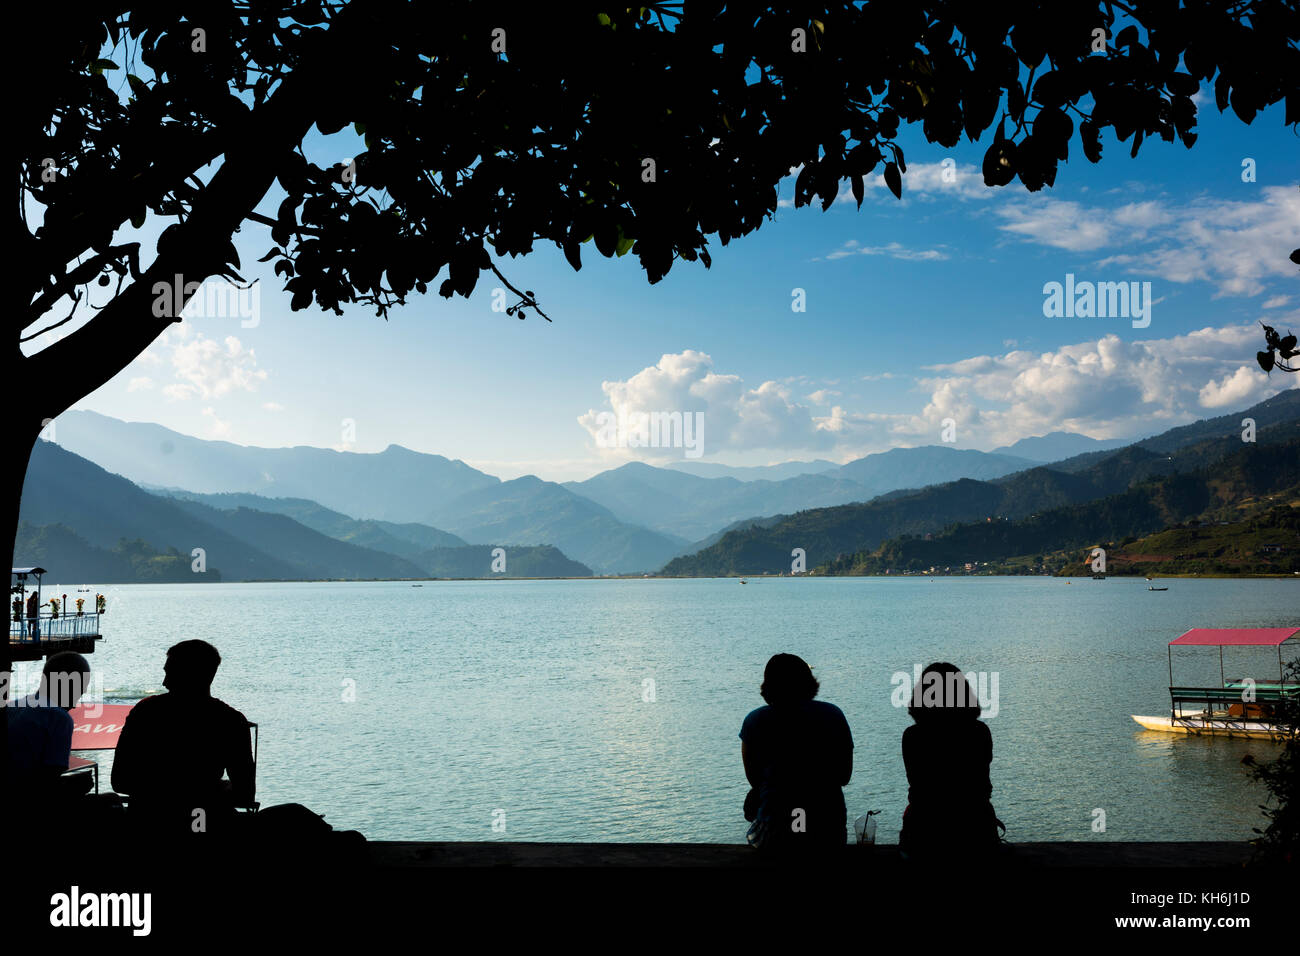 Fewa Lake of Pokhara, Nepal - Stock Image